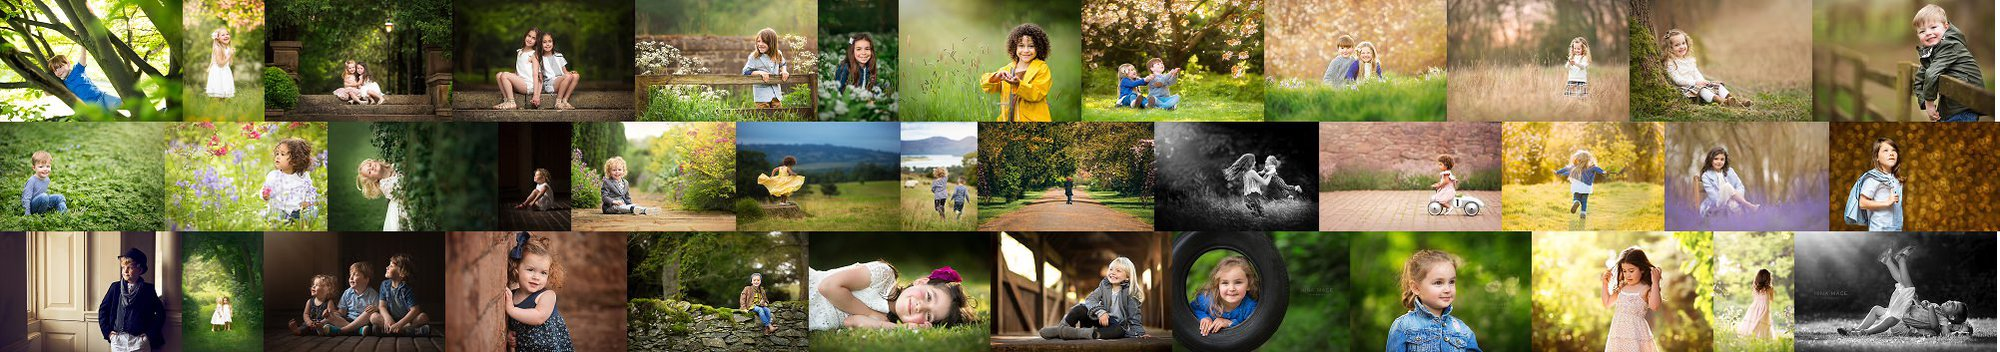 children's photography workshops